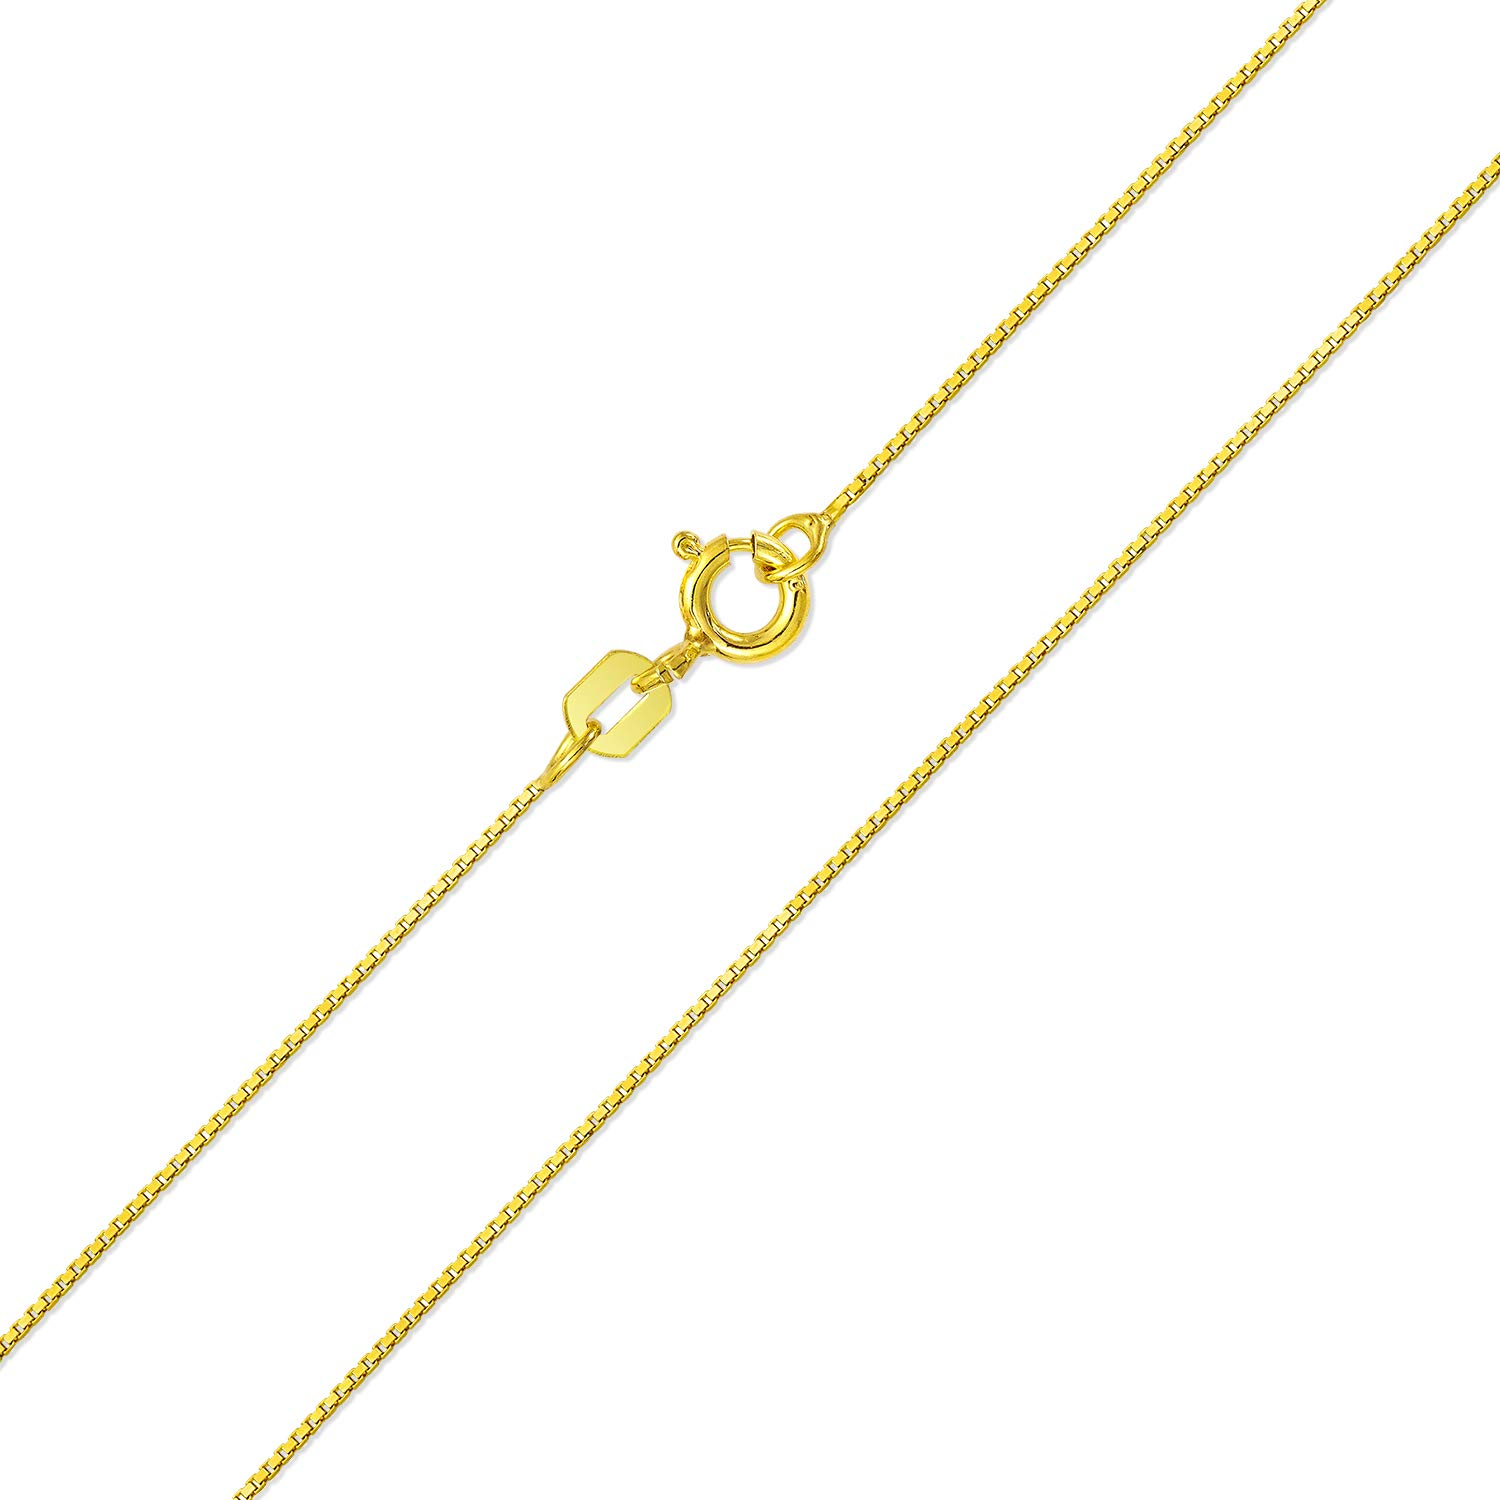 Bling Jewelry Gold Plated Unisex Box Link Chain 18 Inches BSB-Box-GOLD-18